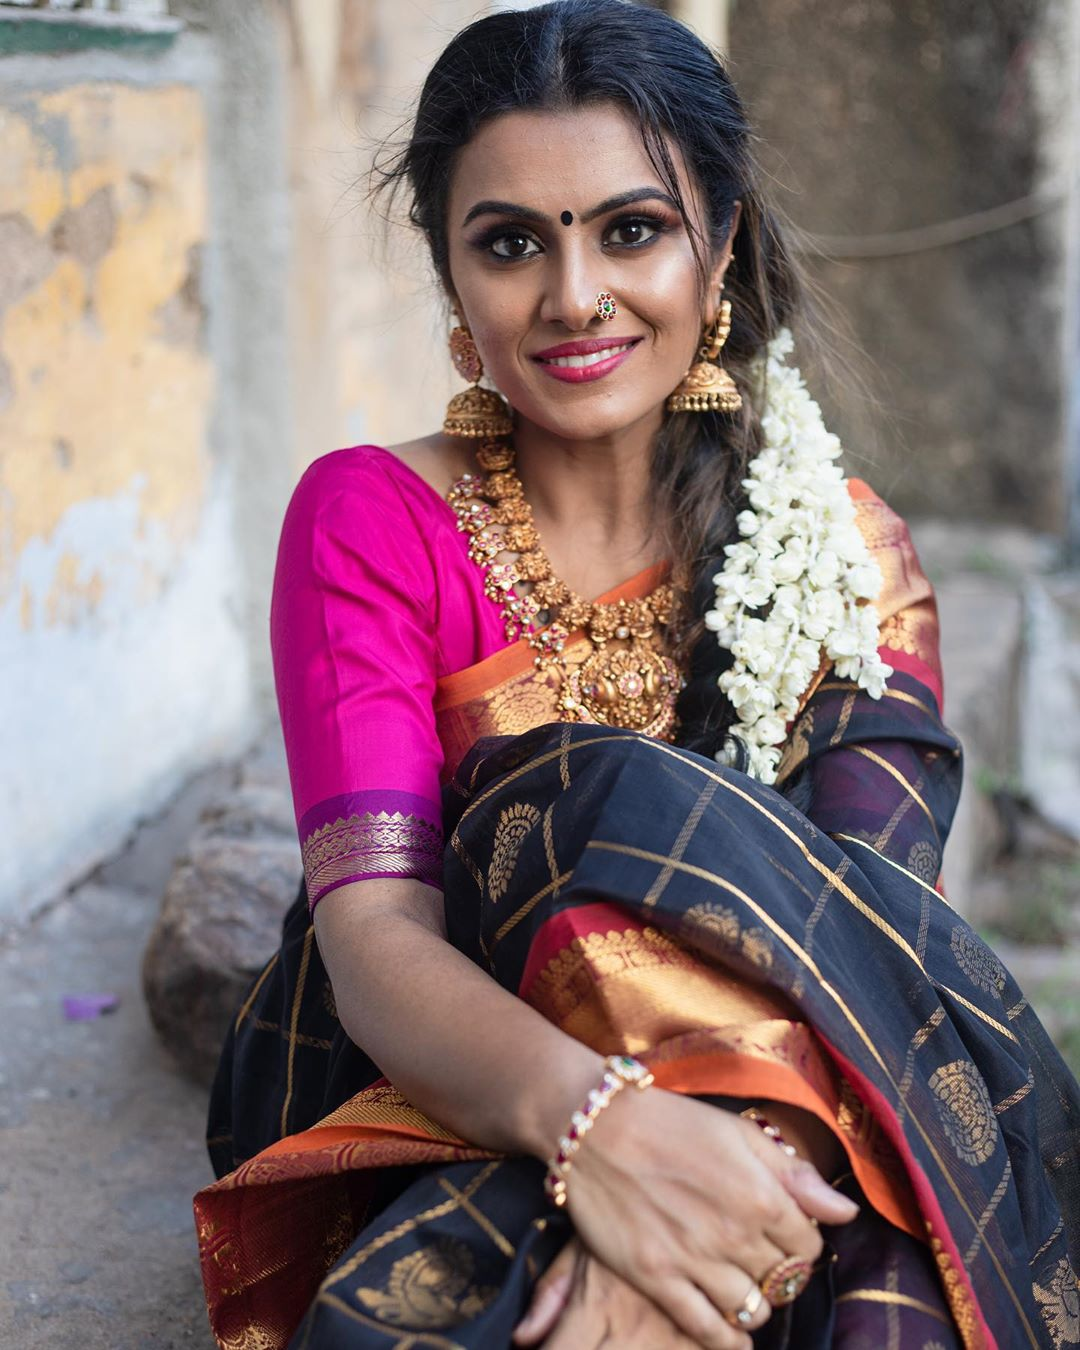 styling-sarees-tips-12